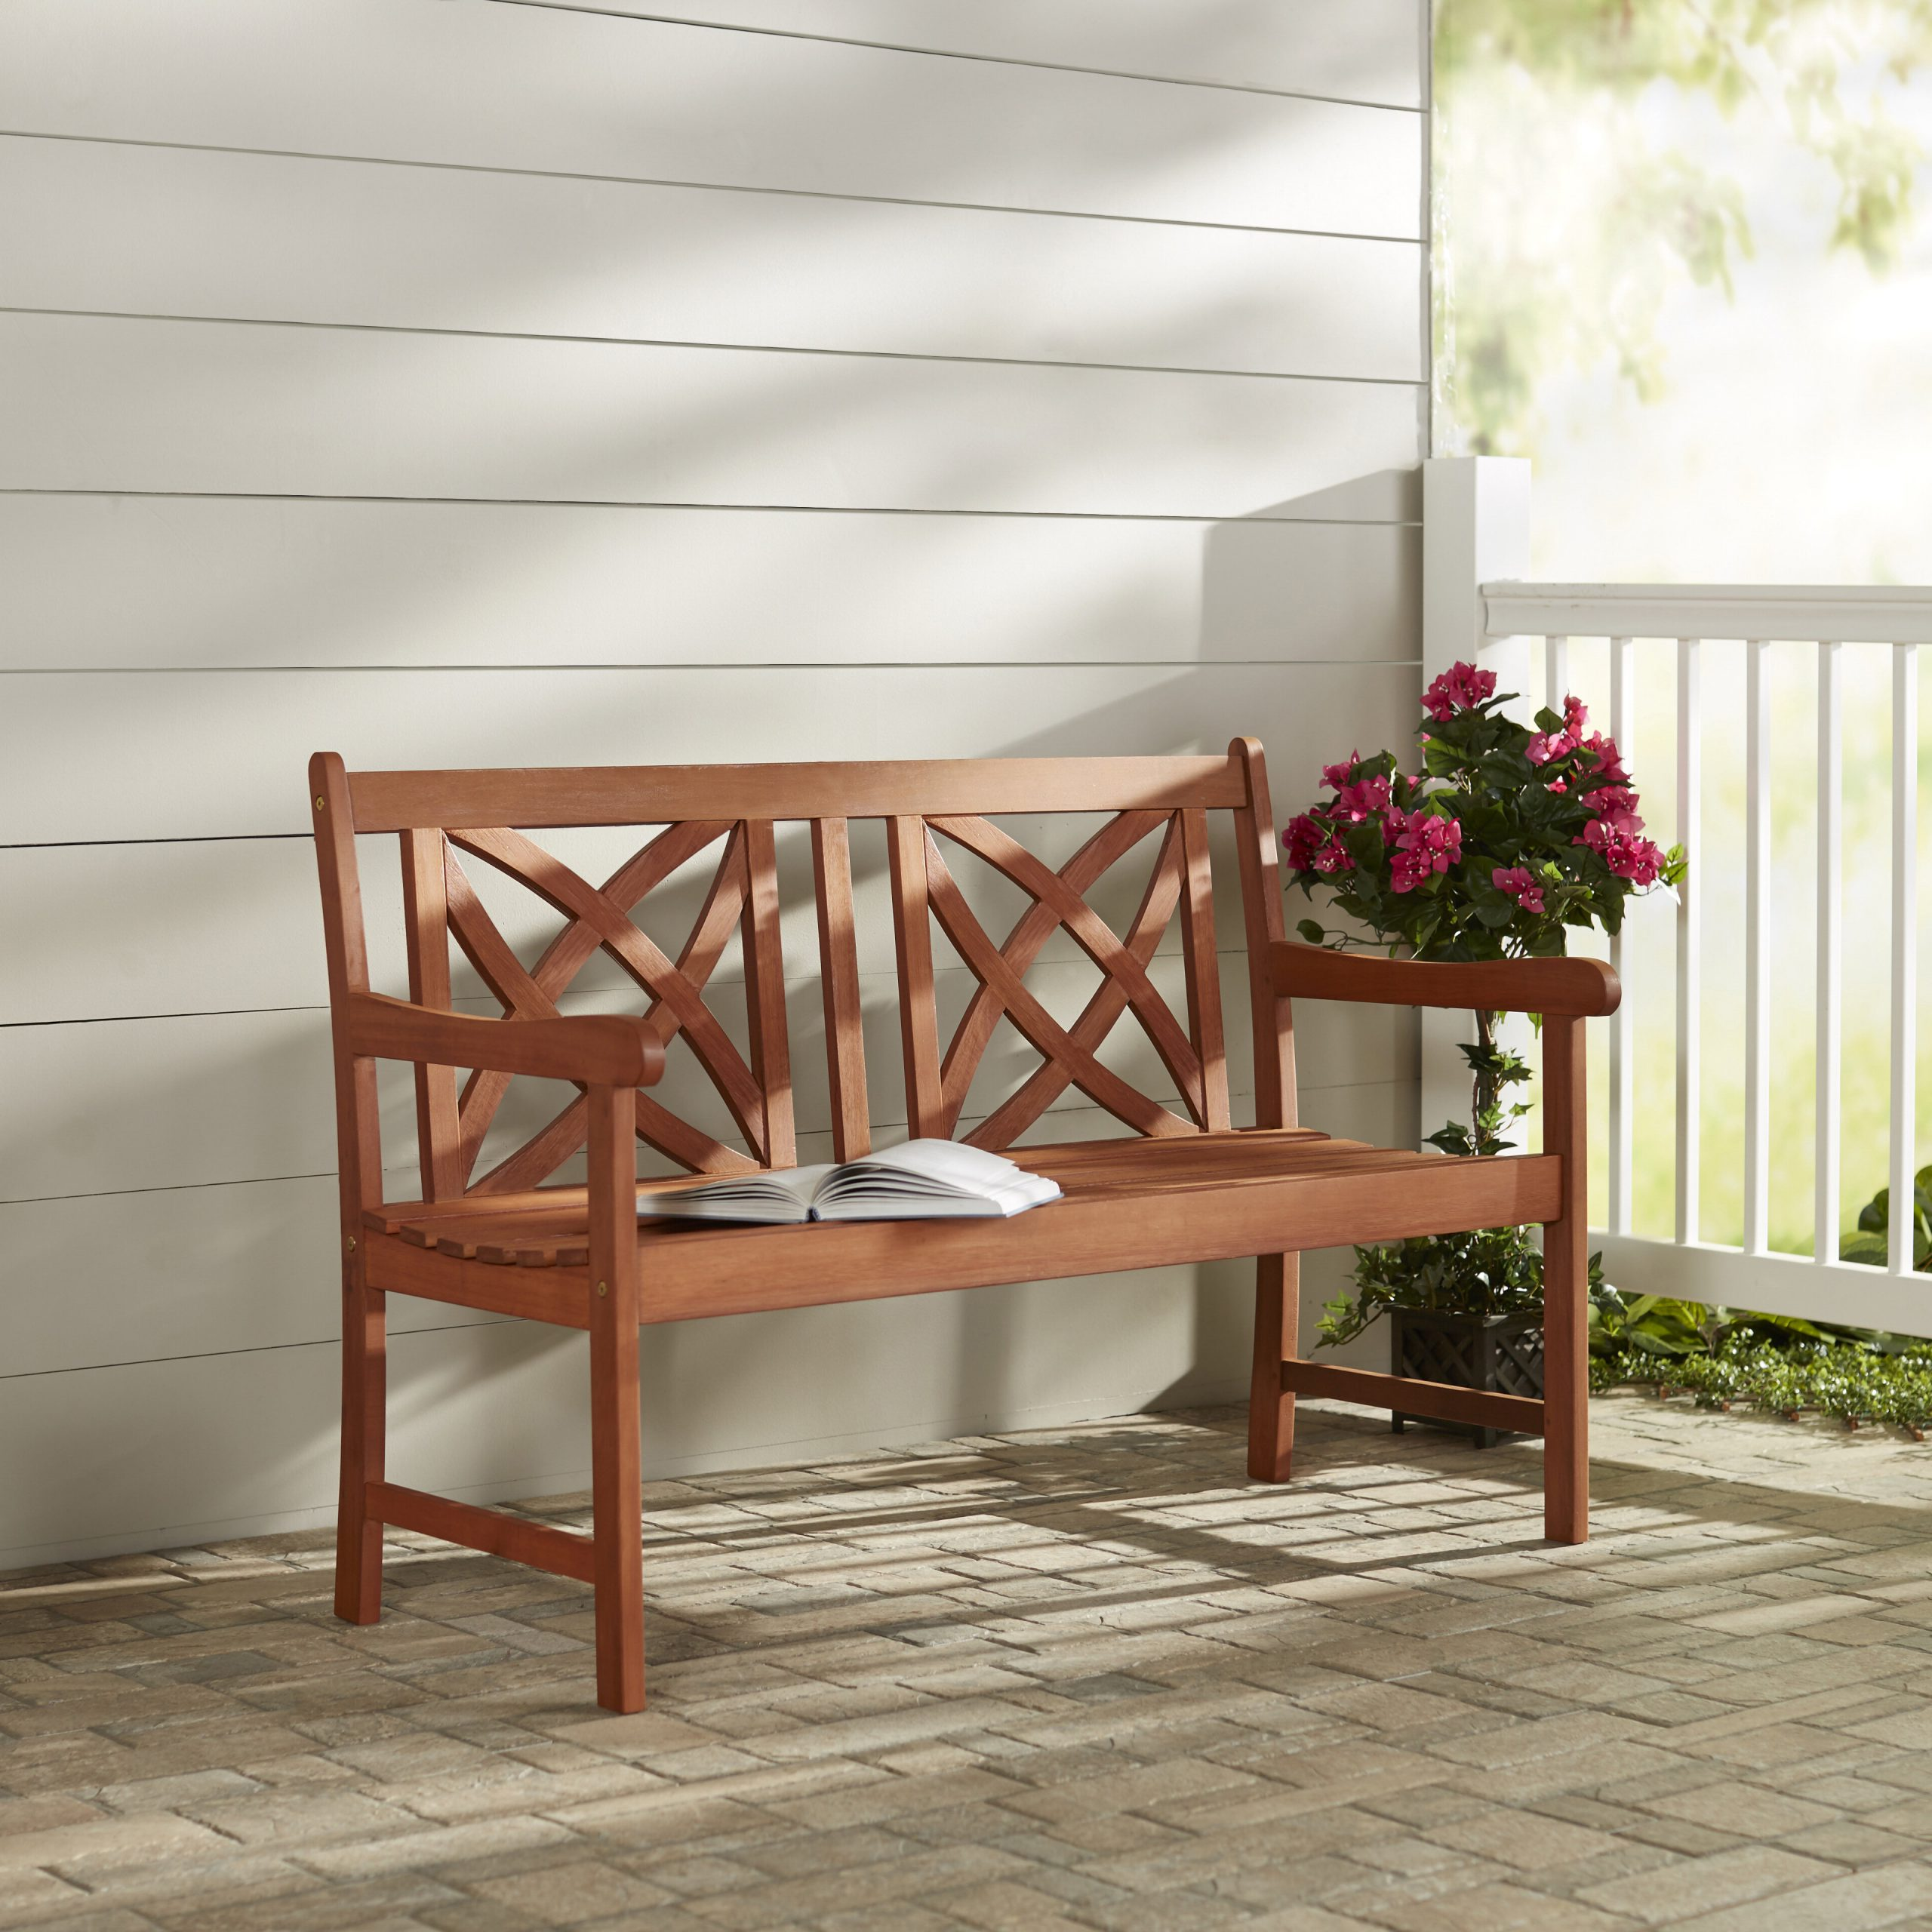 Garden Outdoor Benches You'll Love In (View 17 of 30)